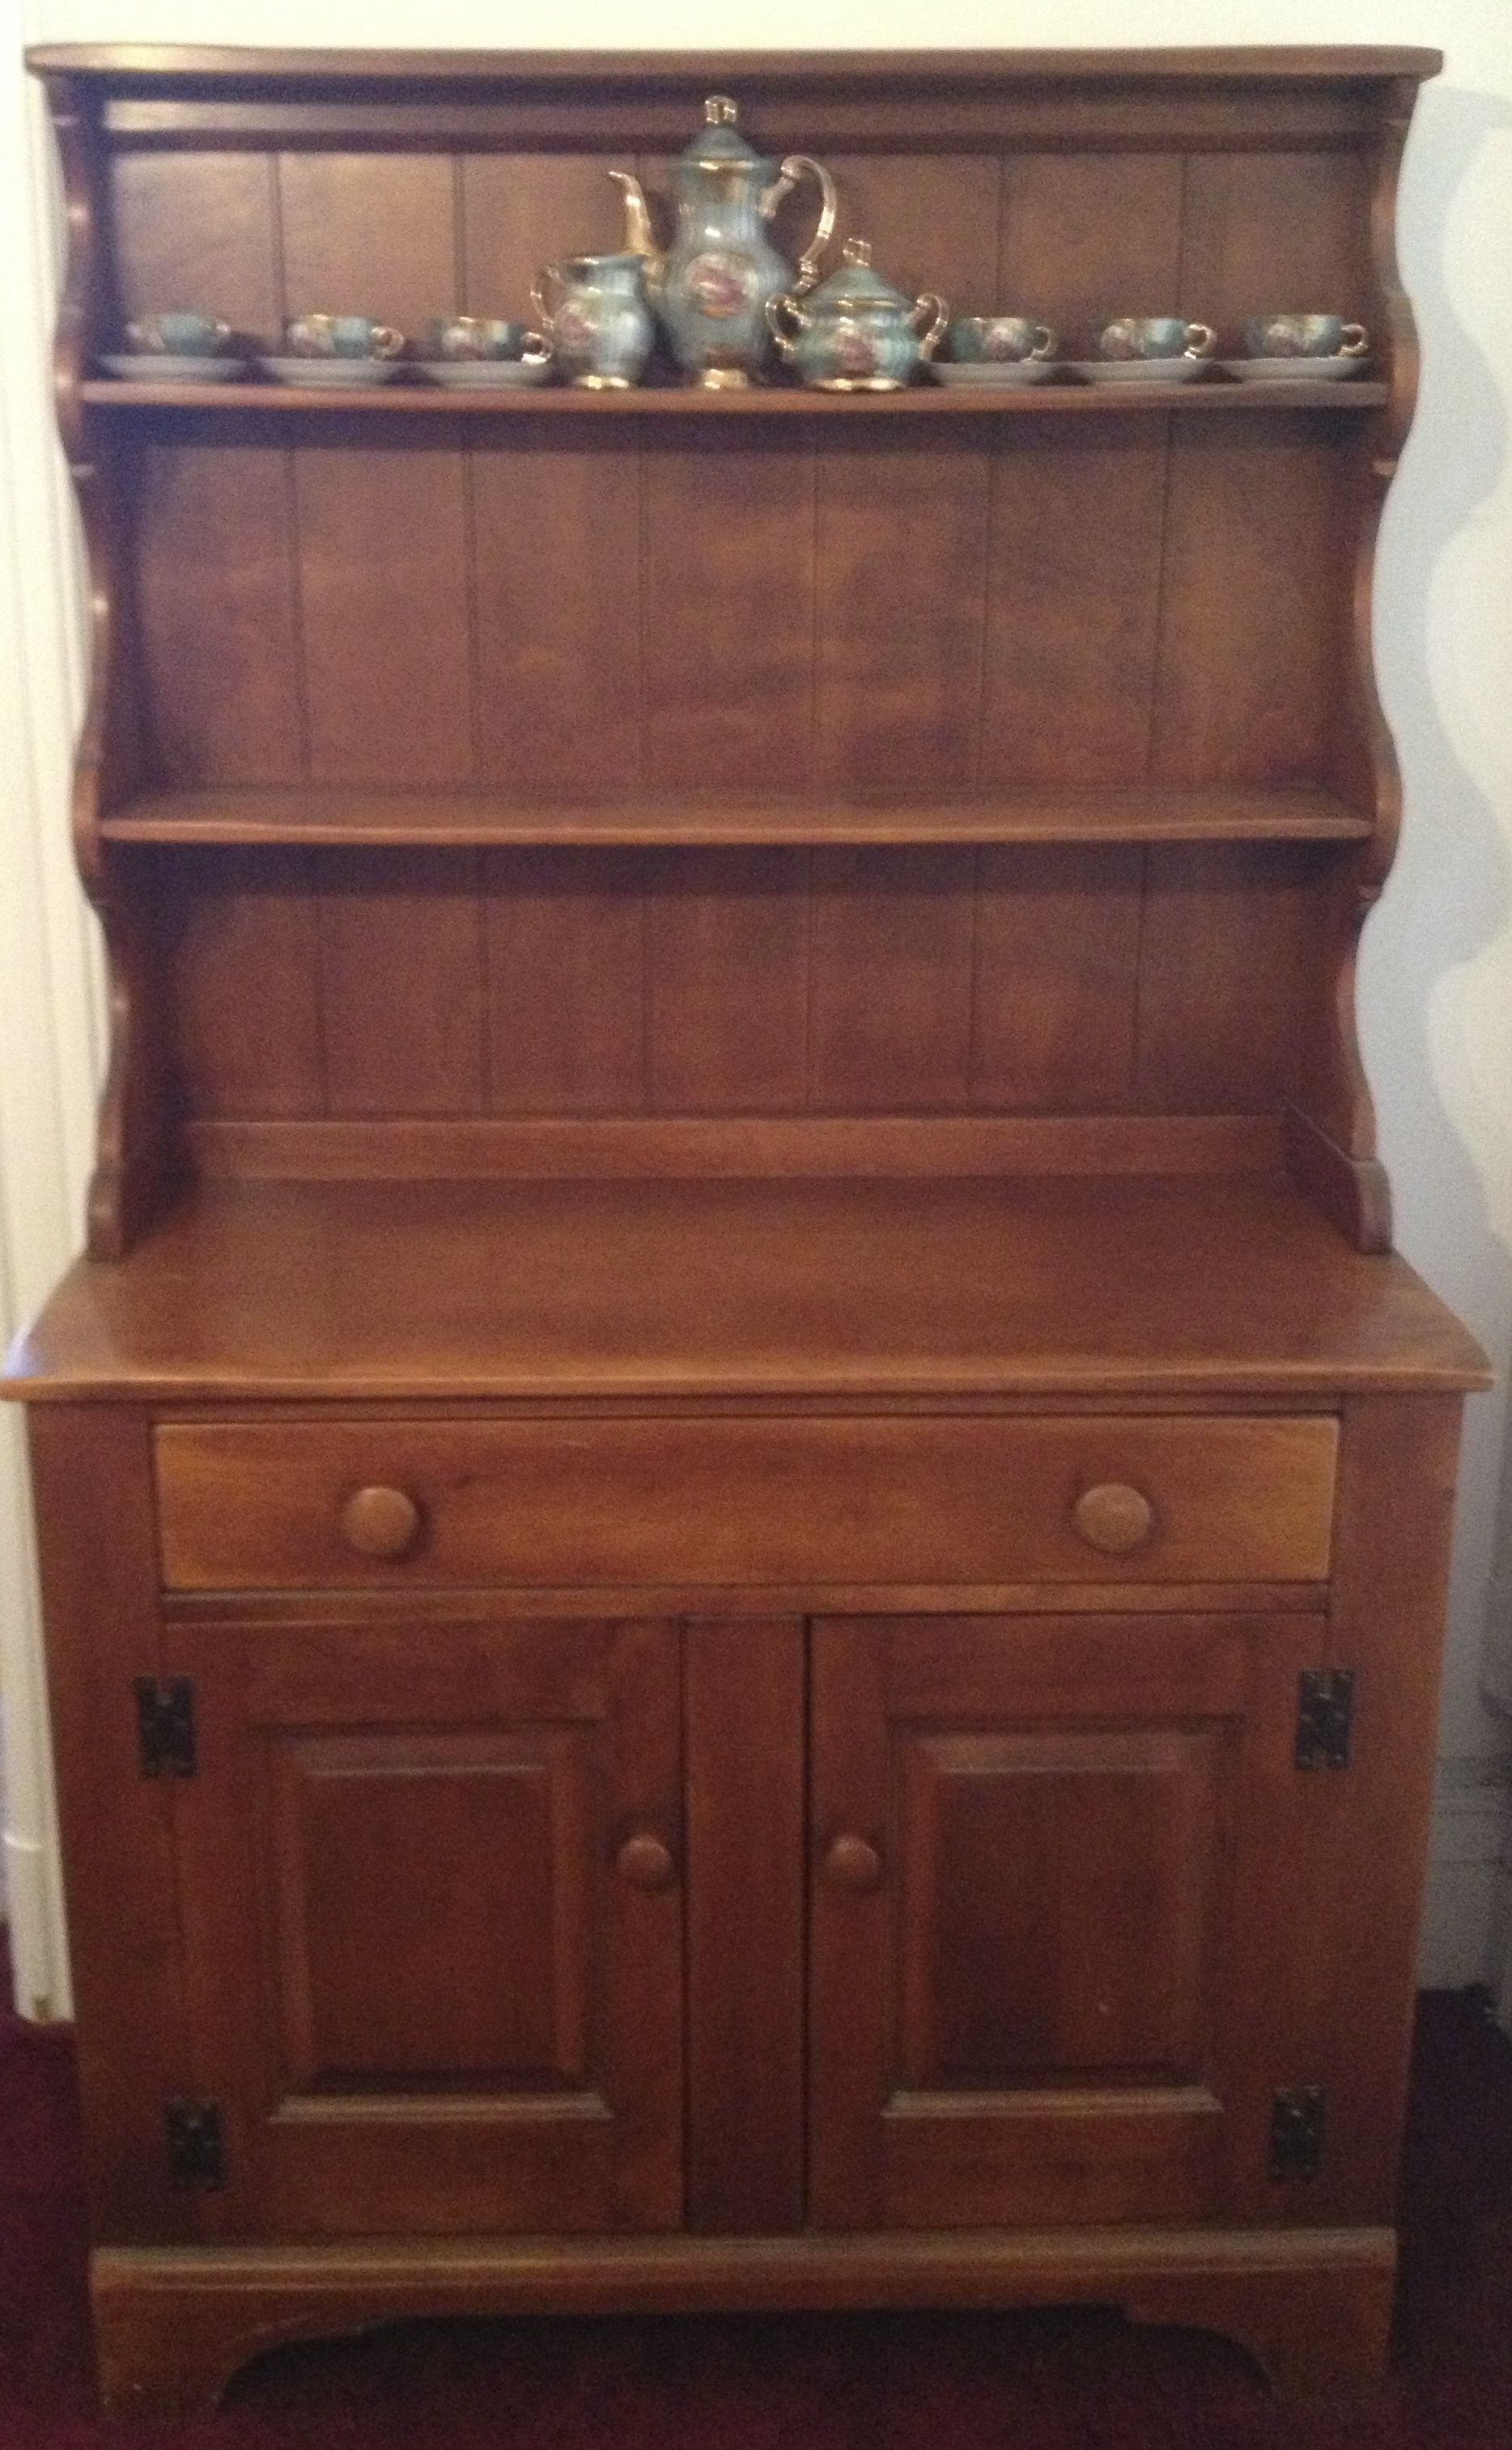 Cushman Colonial Creations Hutch I Have This Piece Bought In 1965 From An Antique Dealer Shreveport La Who Told Us That It Was Built 1900